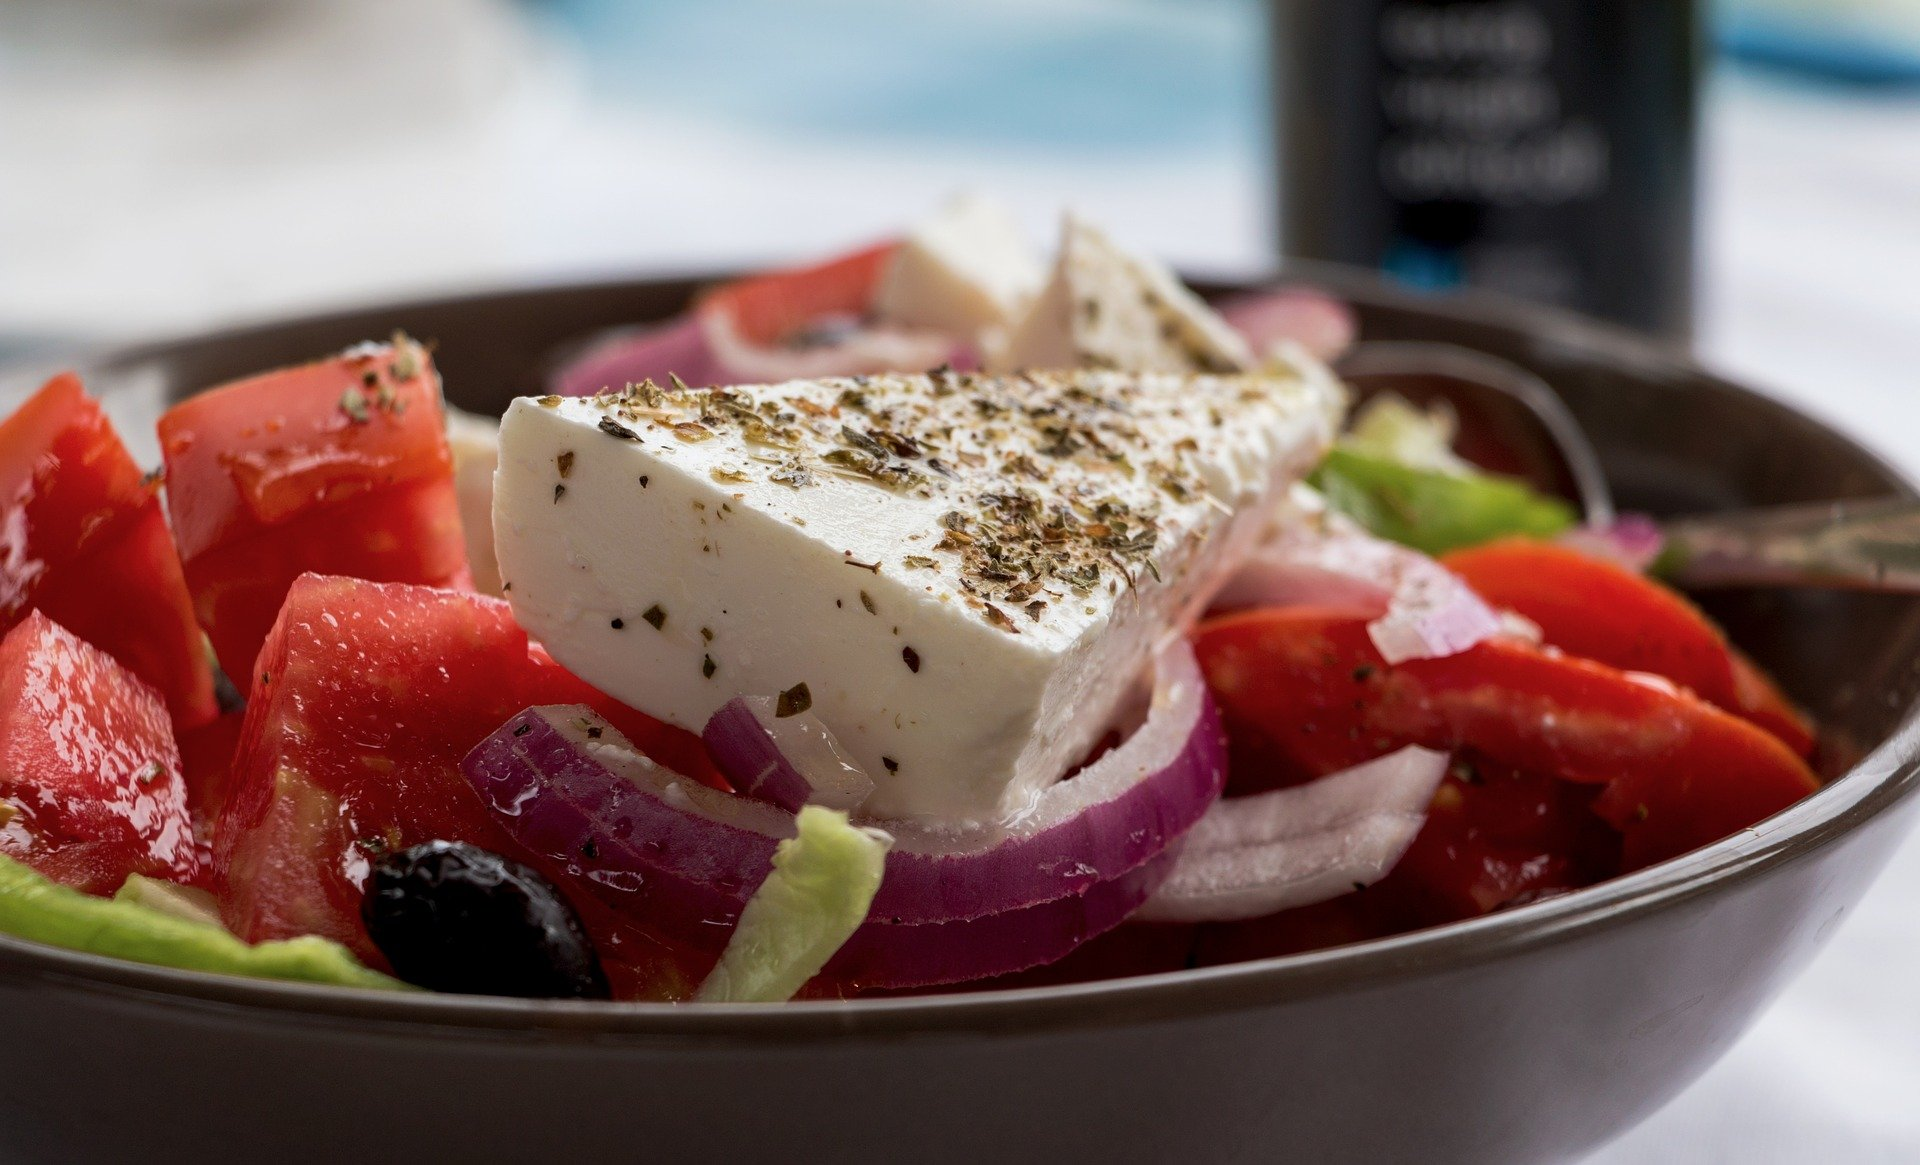 A bowl of marinated vegetables salad with feta